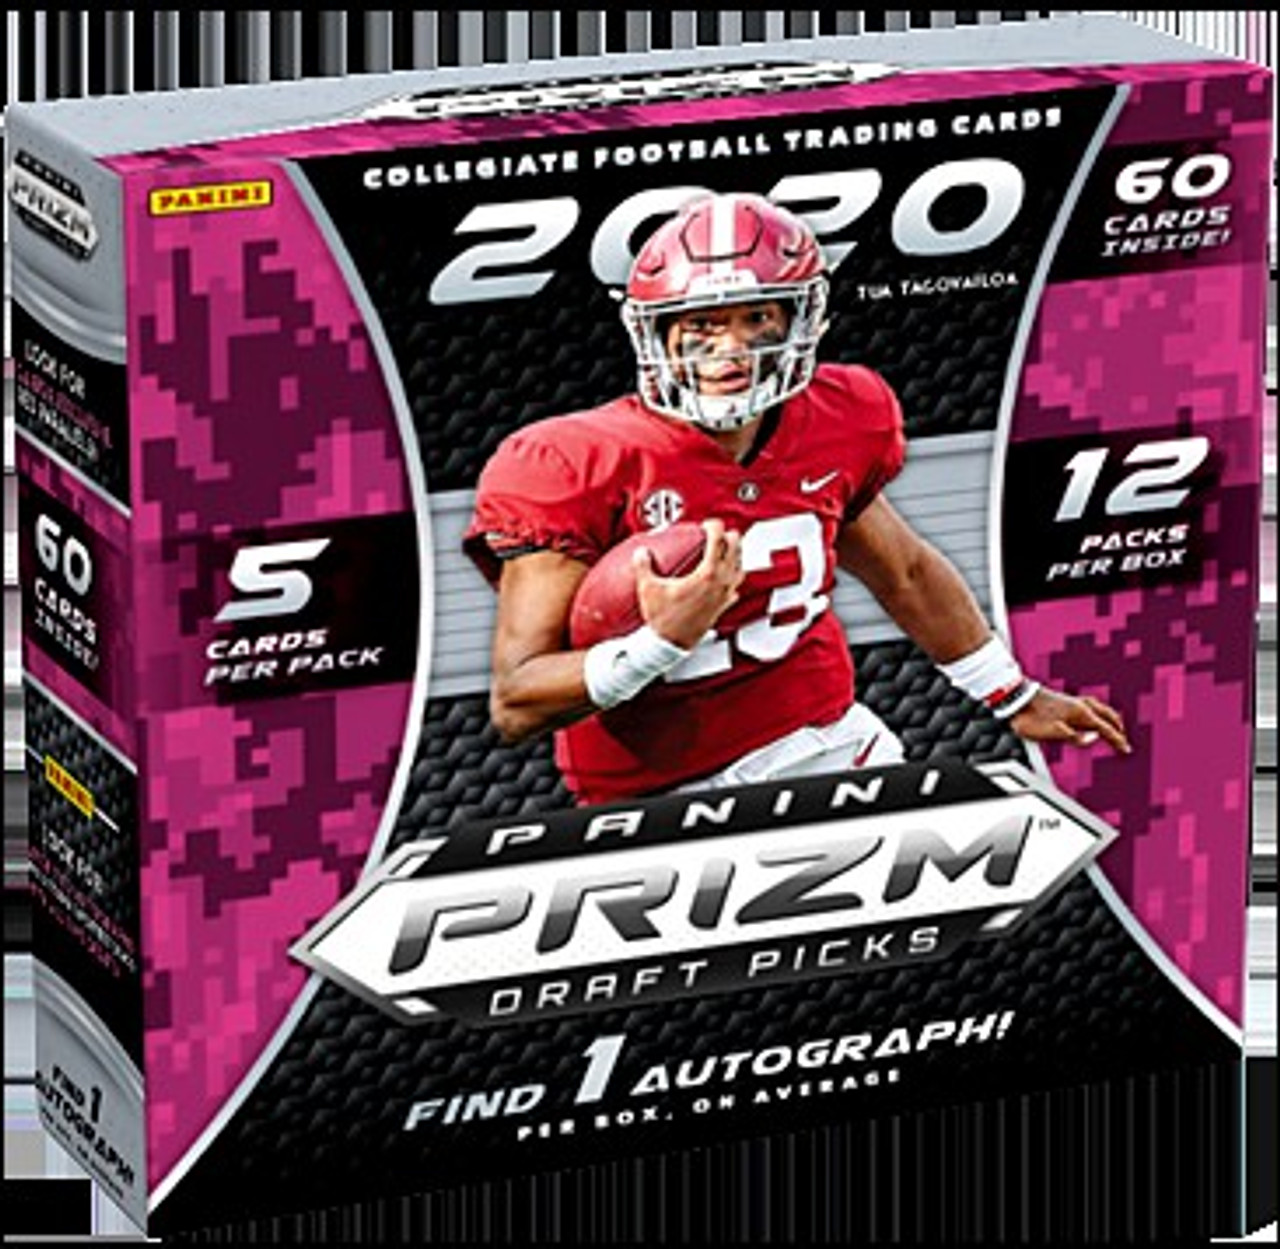 Collegiate Panini 2020 Prizm Draft Picks Football Exclusive Trading Card Mega Box 12 Packs 1 Autograph Toywiz